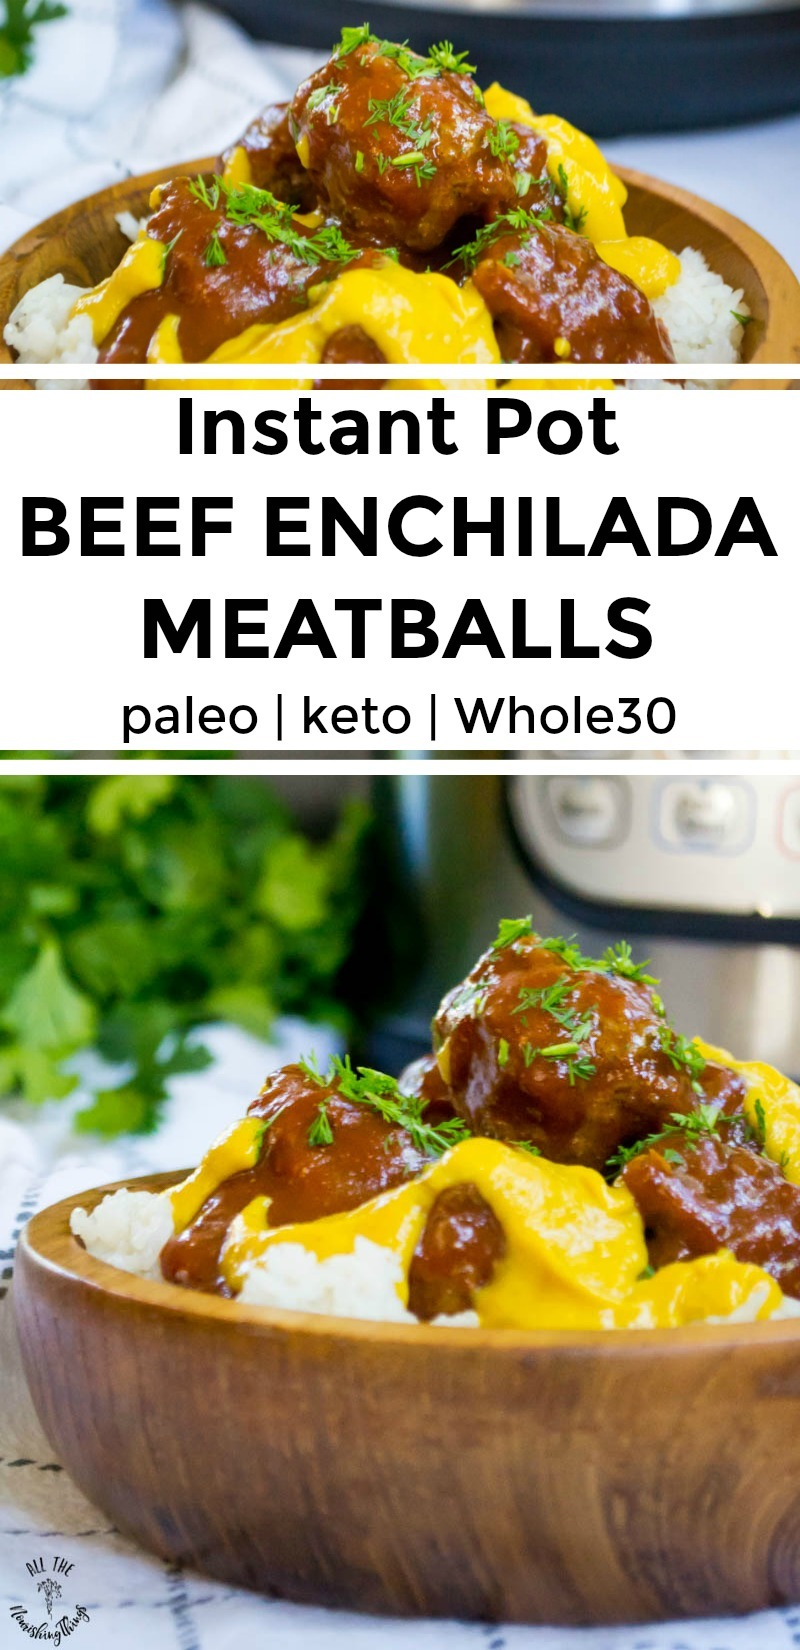 collage of instant pot beef enchilada meatballs in a wooden bowl with text overlay